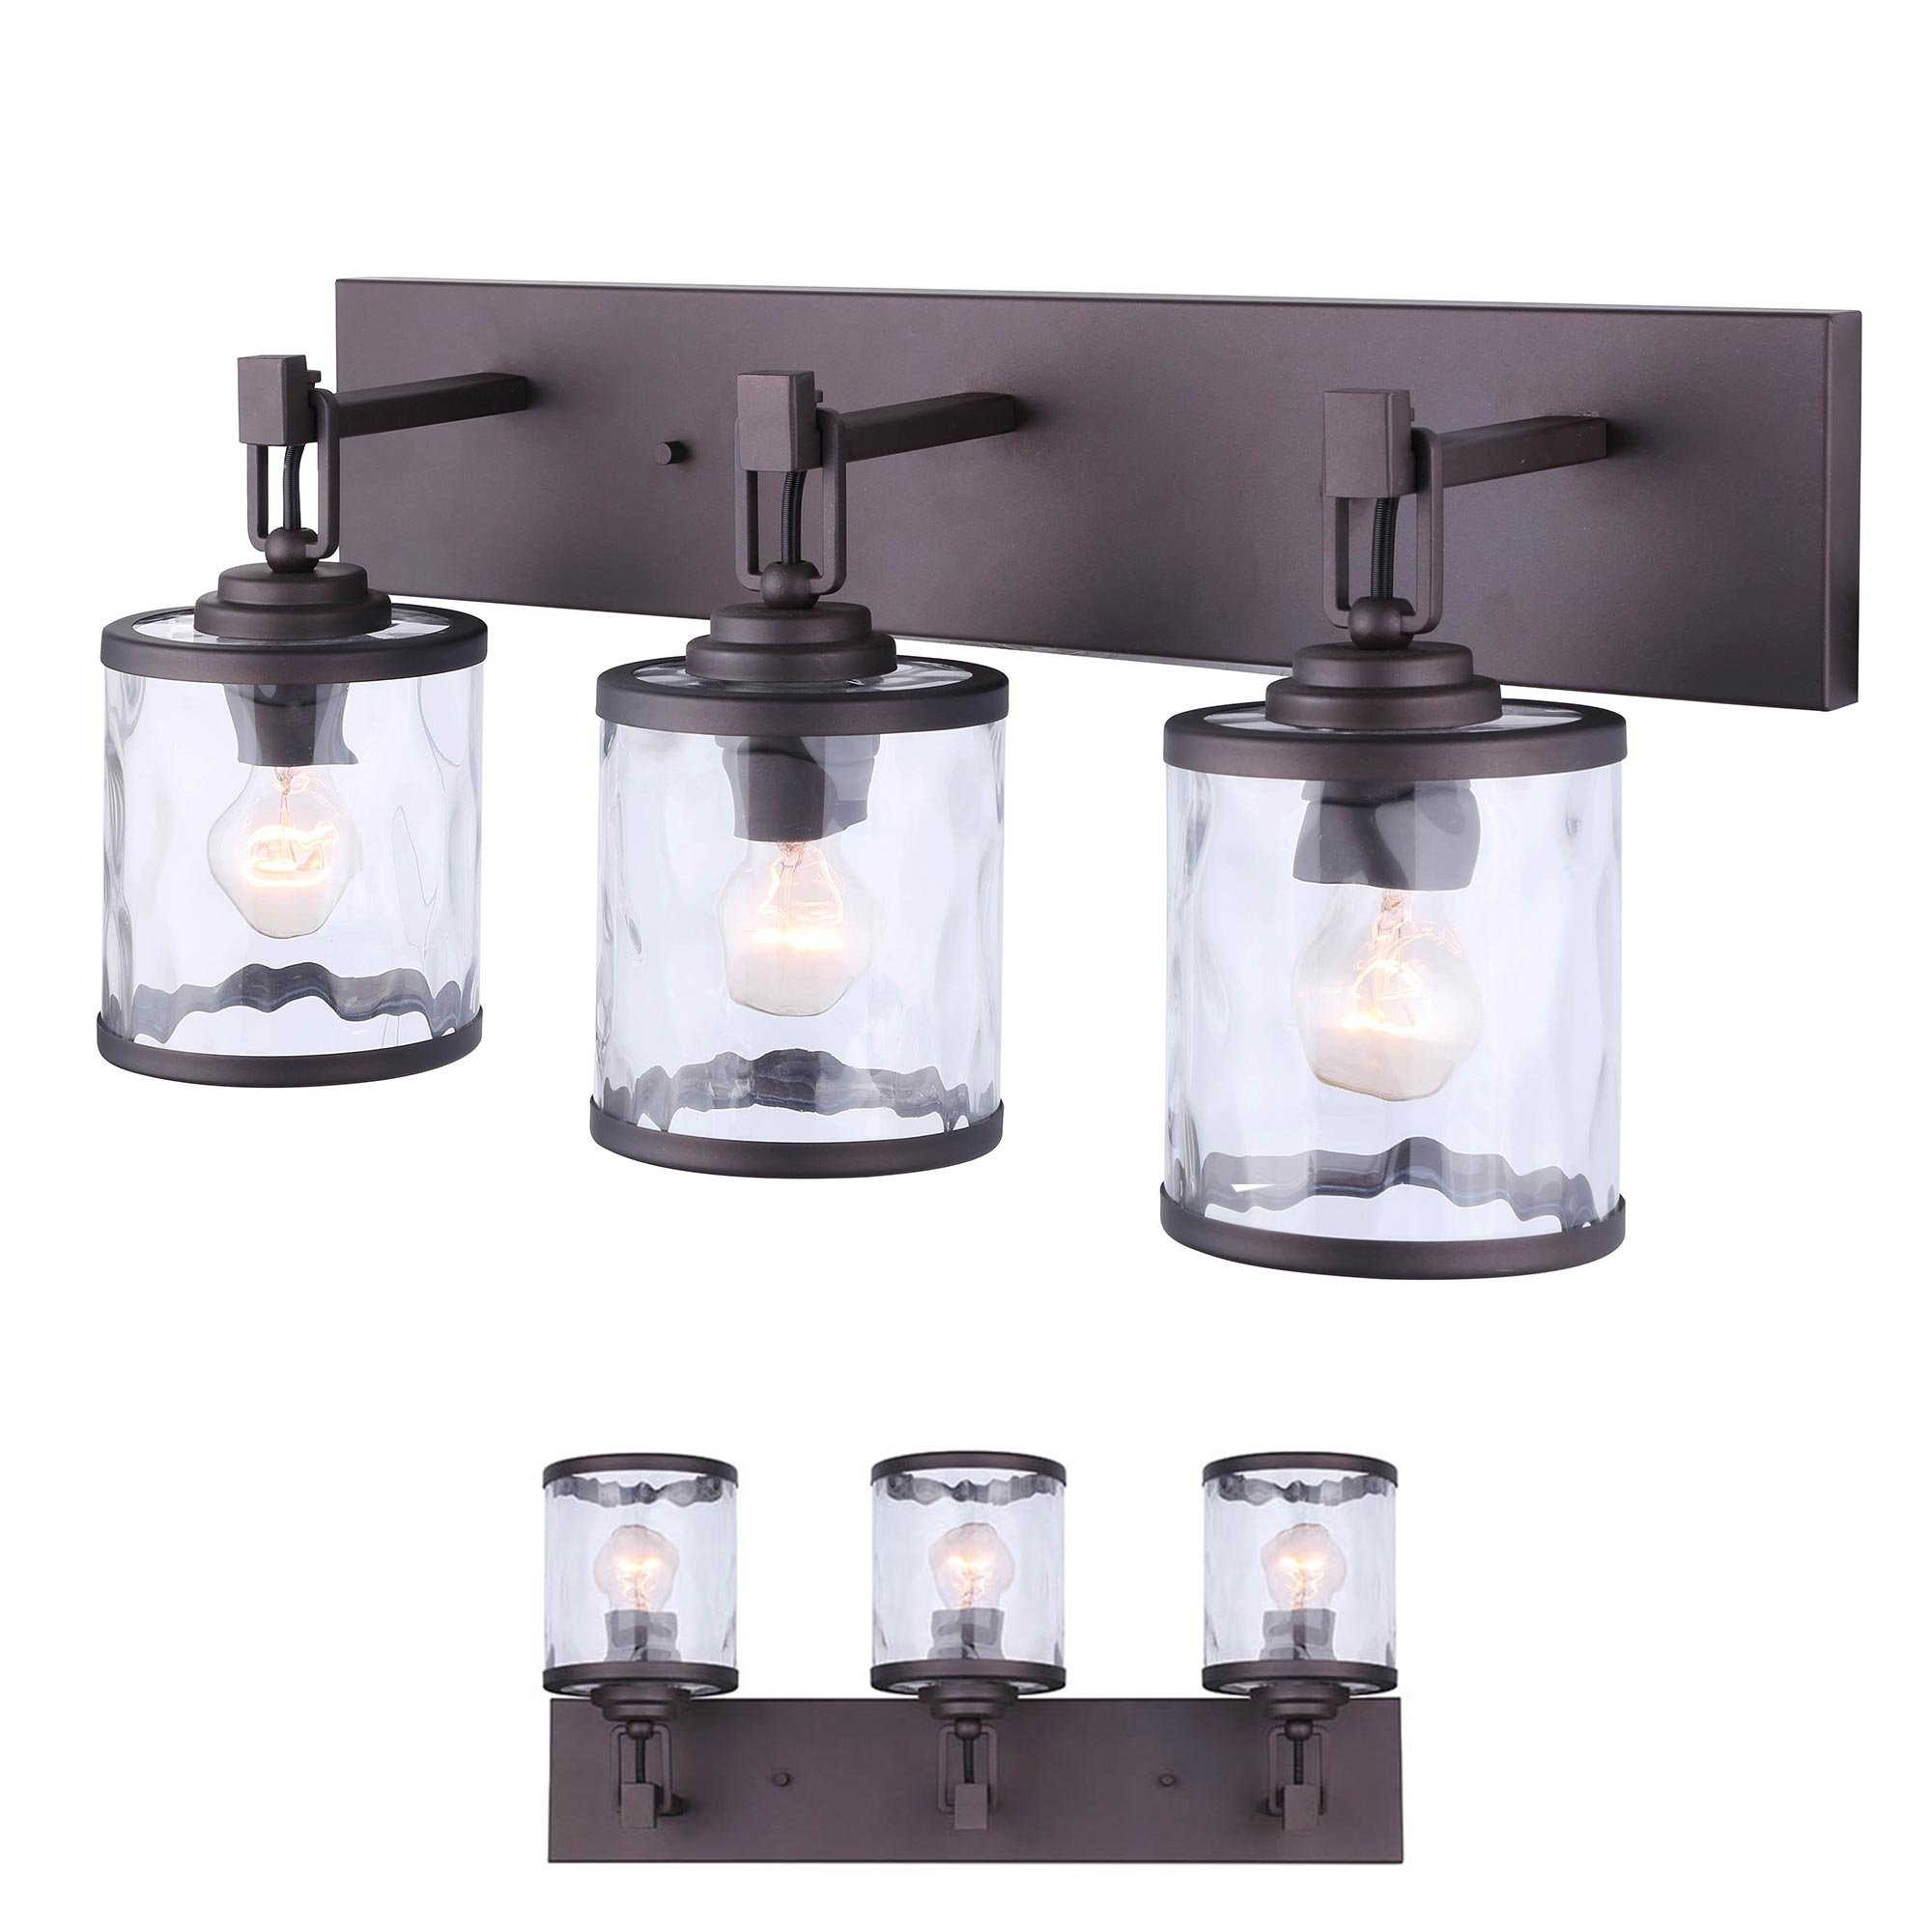 Oil Rubbed Bronze Vanity Bathroom 3 Light Bar Fixture ...